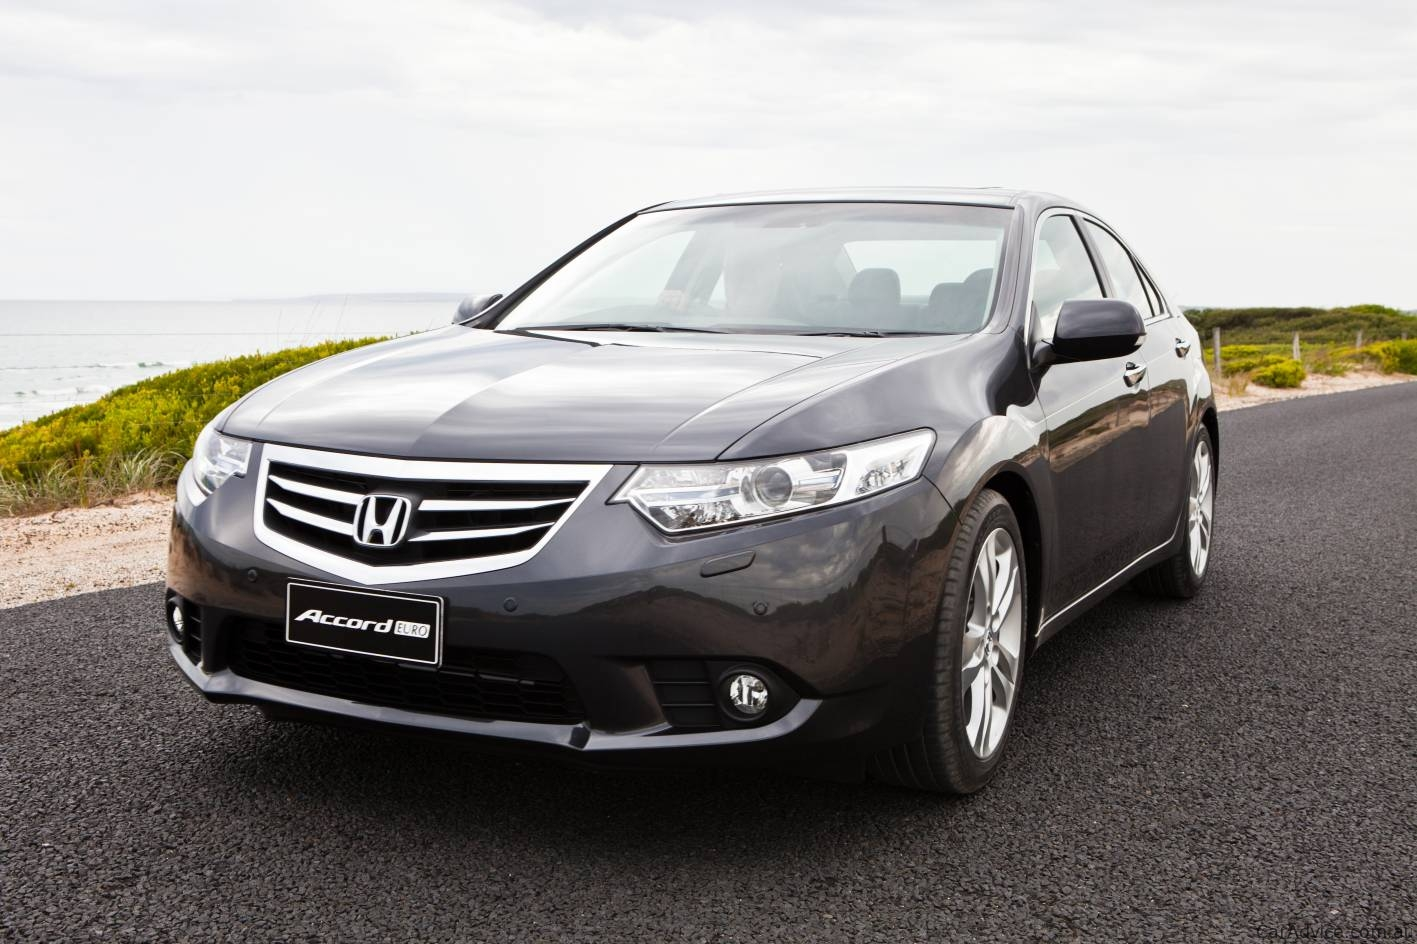 2012 Honda Accord Euro At Australian International Motor